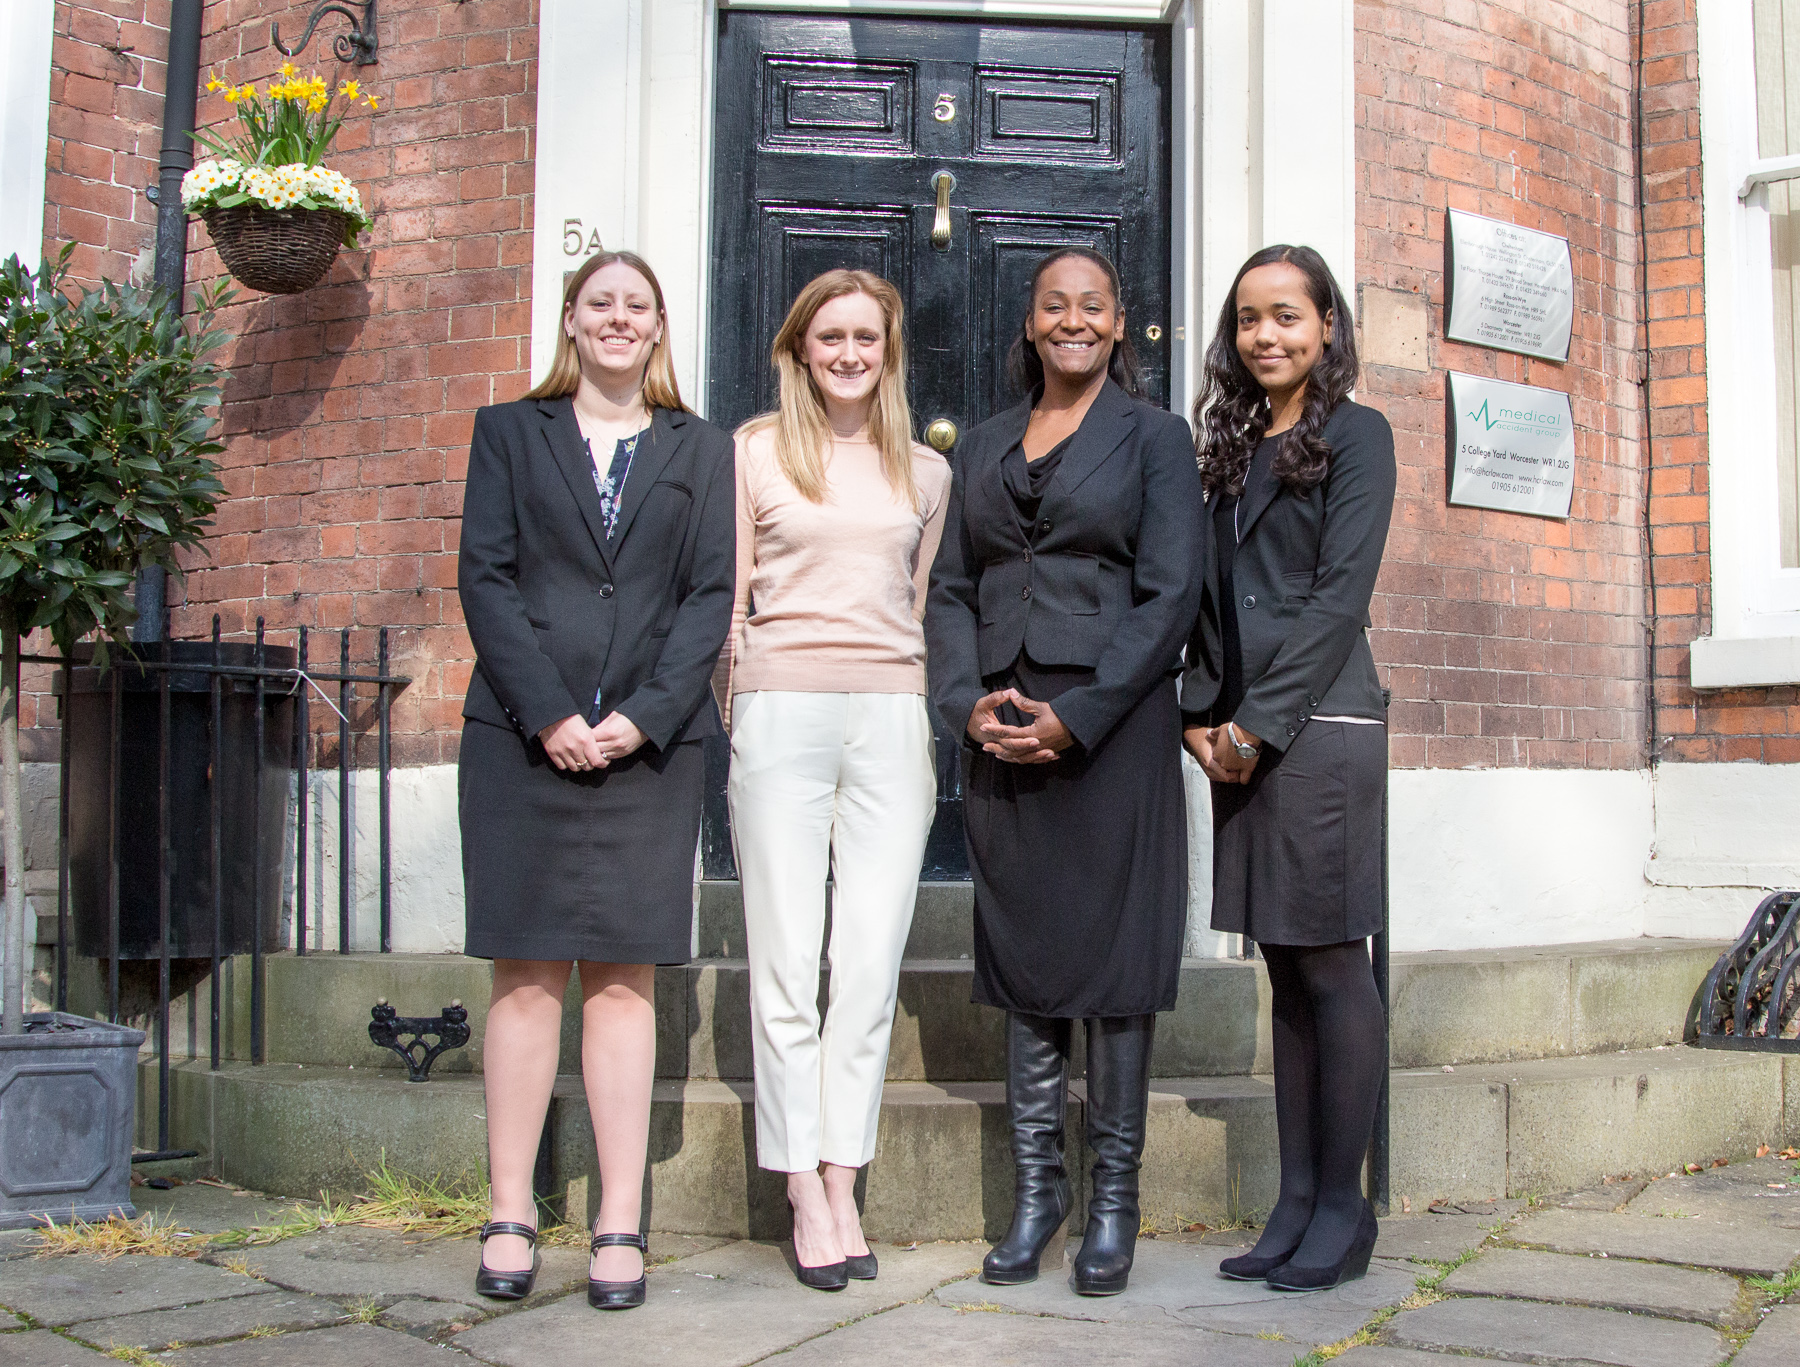 L-R Beverley Brewer, Eve Loughrey, Inez Brown, Nathalie Needham